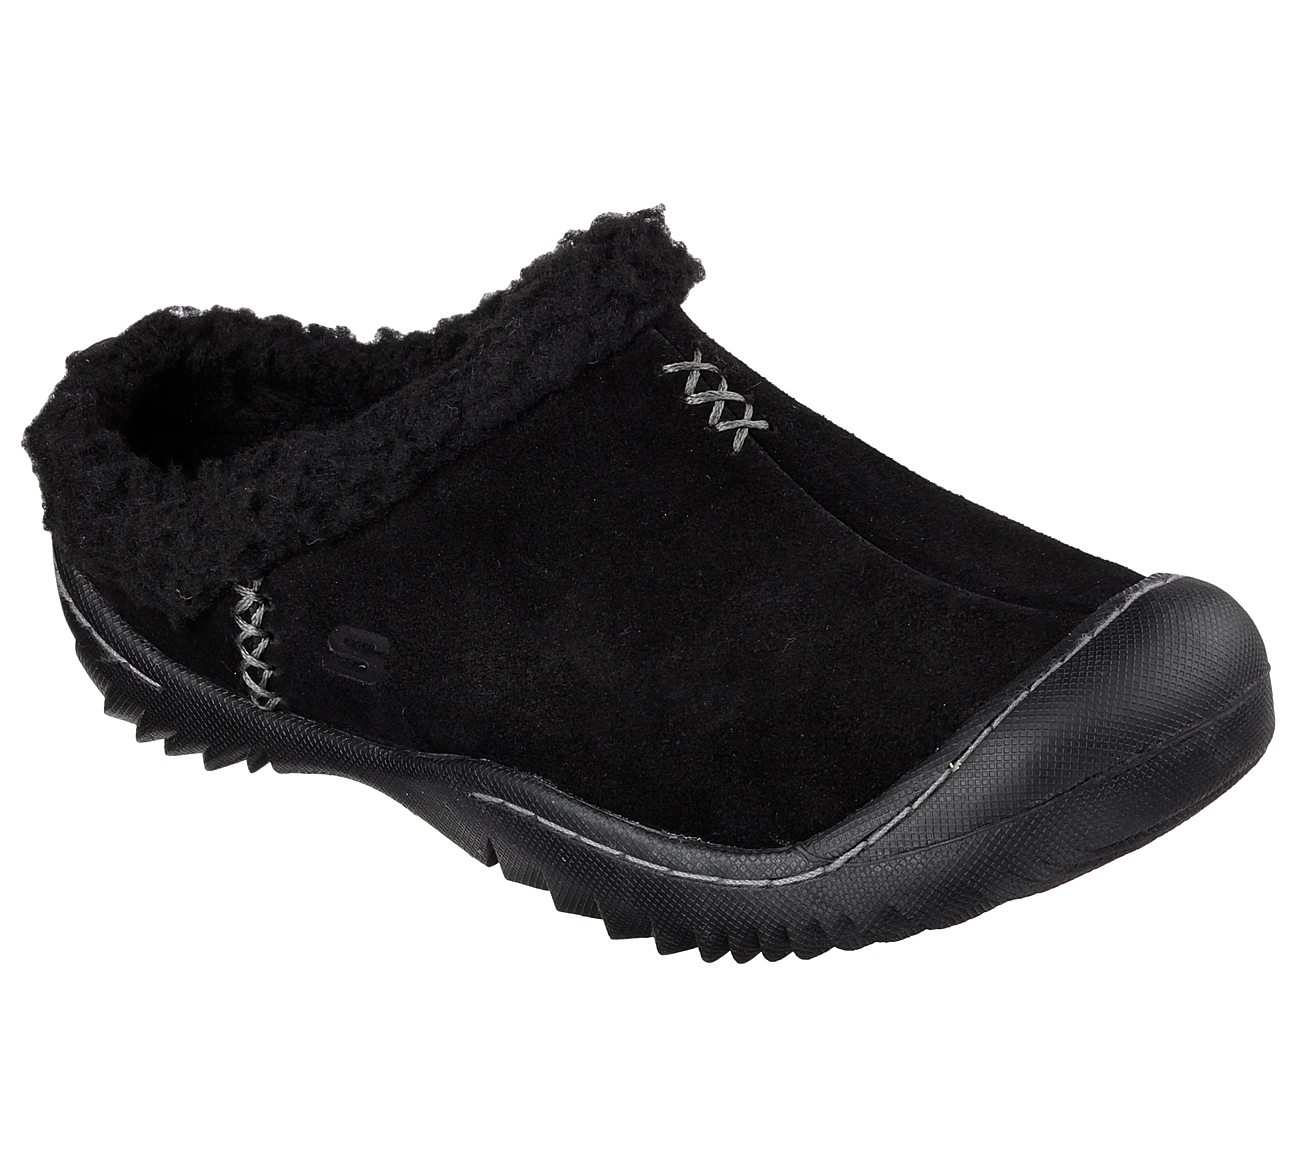 Buy SKECHERS Spartan - Snuggly USA